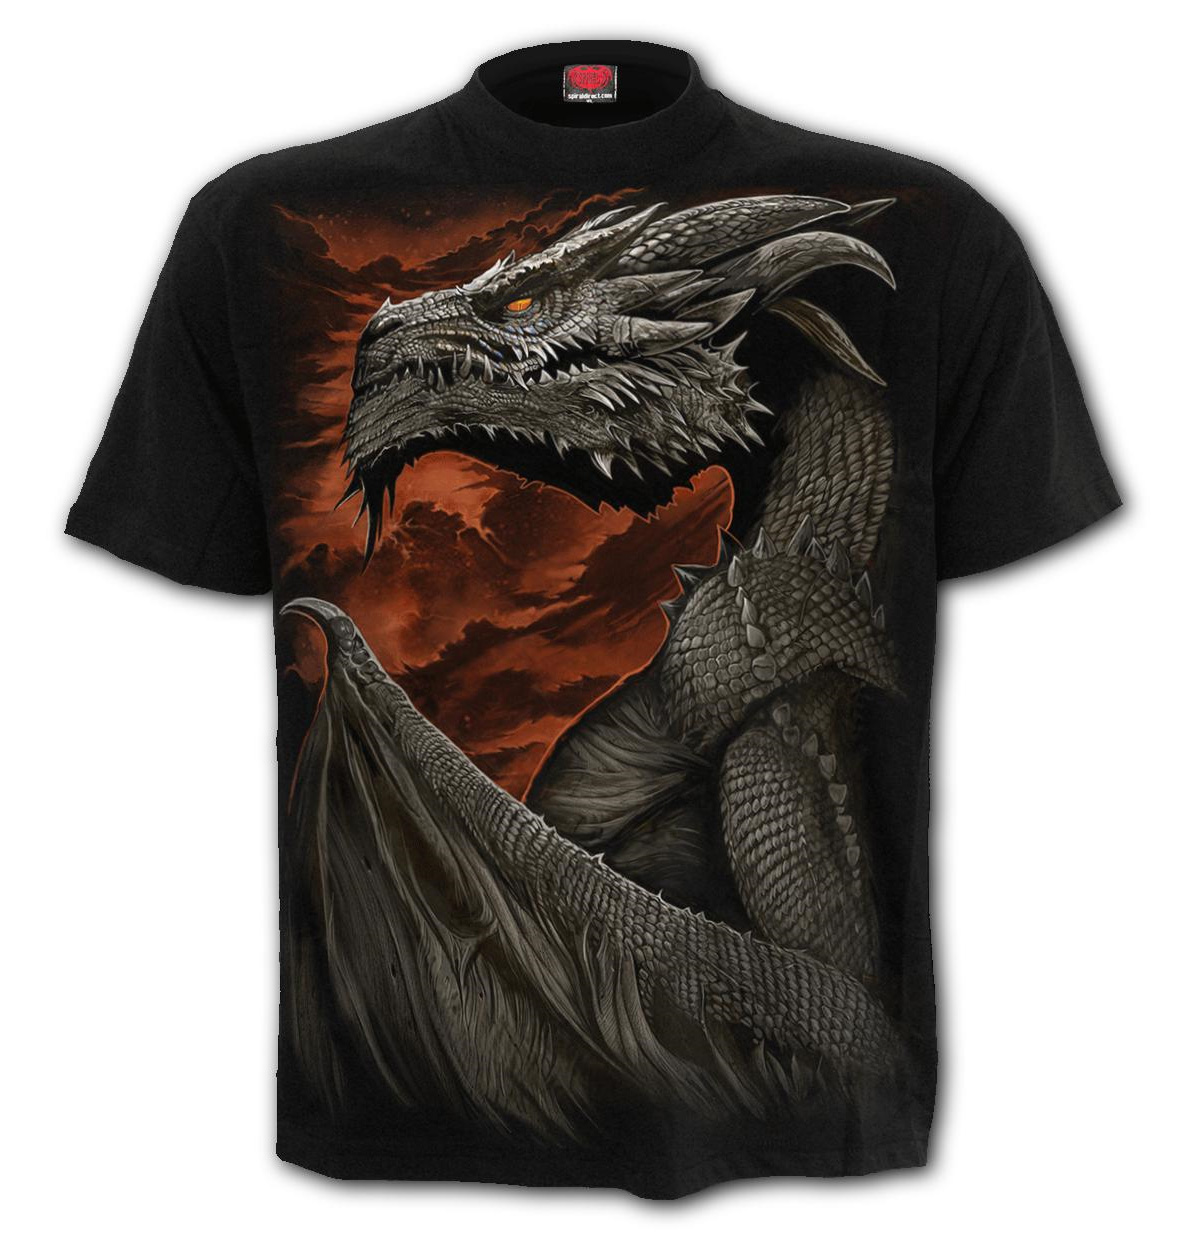 SPIRAL-Direct-Unisex-T-Shirt-Biker-Goth-MAJESTIC-DRACO-Dragon-All-Sizes thumbnail 3